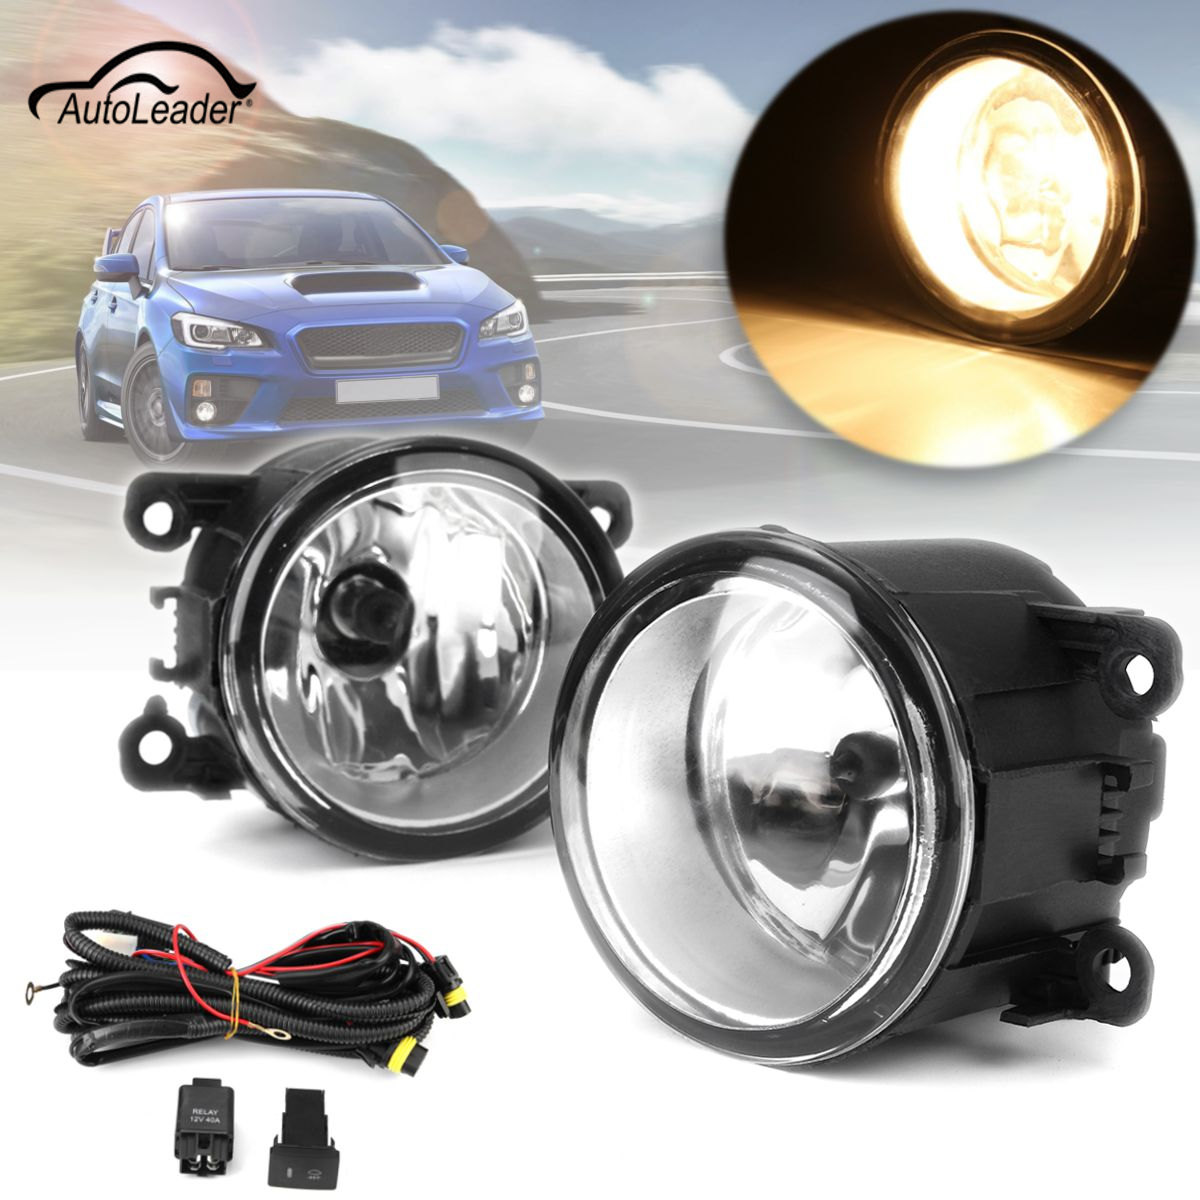 For /WRX/WRX STI/XV 1 Pair H11 Car Front Fog Light Clear Lens With Wiring Kit car fog lights lamp for mitsubishi triton 2 door 2009 on clear lens pair set wiring kit fog light set free shipping